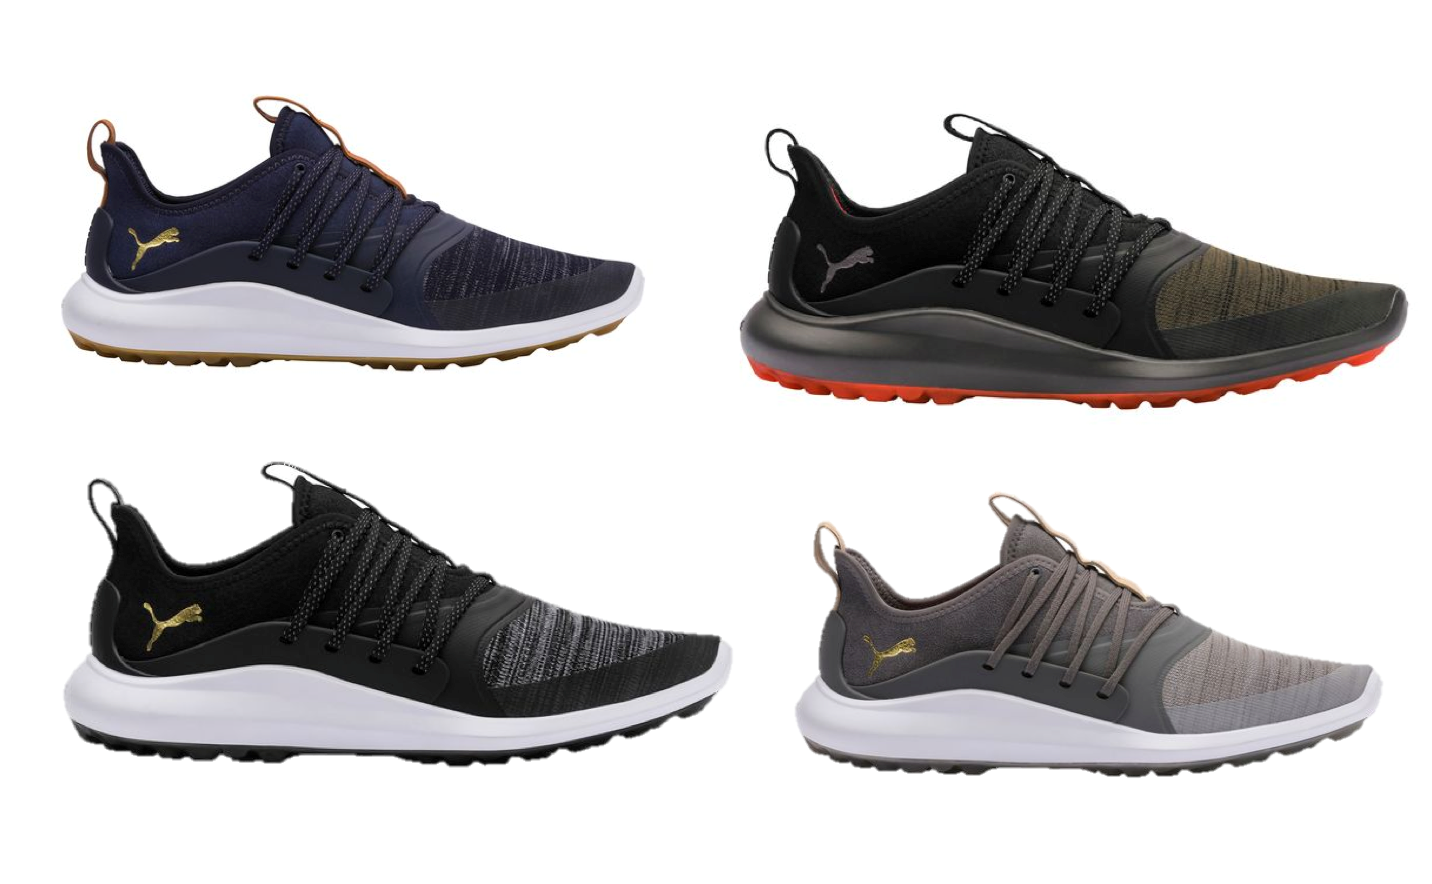 b2c79d411d5e Puma Golf Launches new NXT Footwear Collection